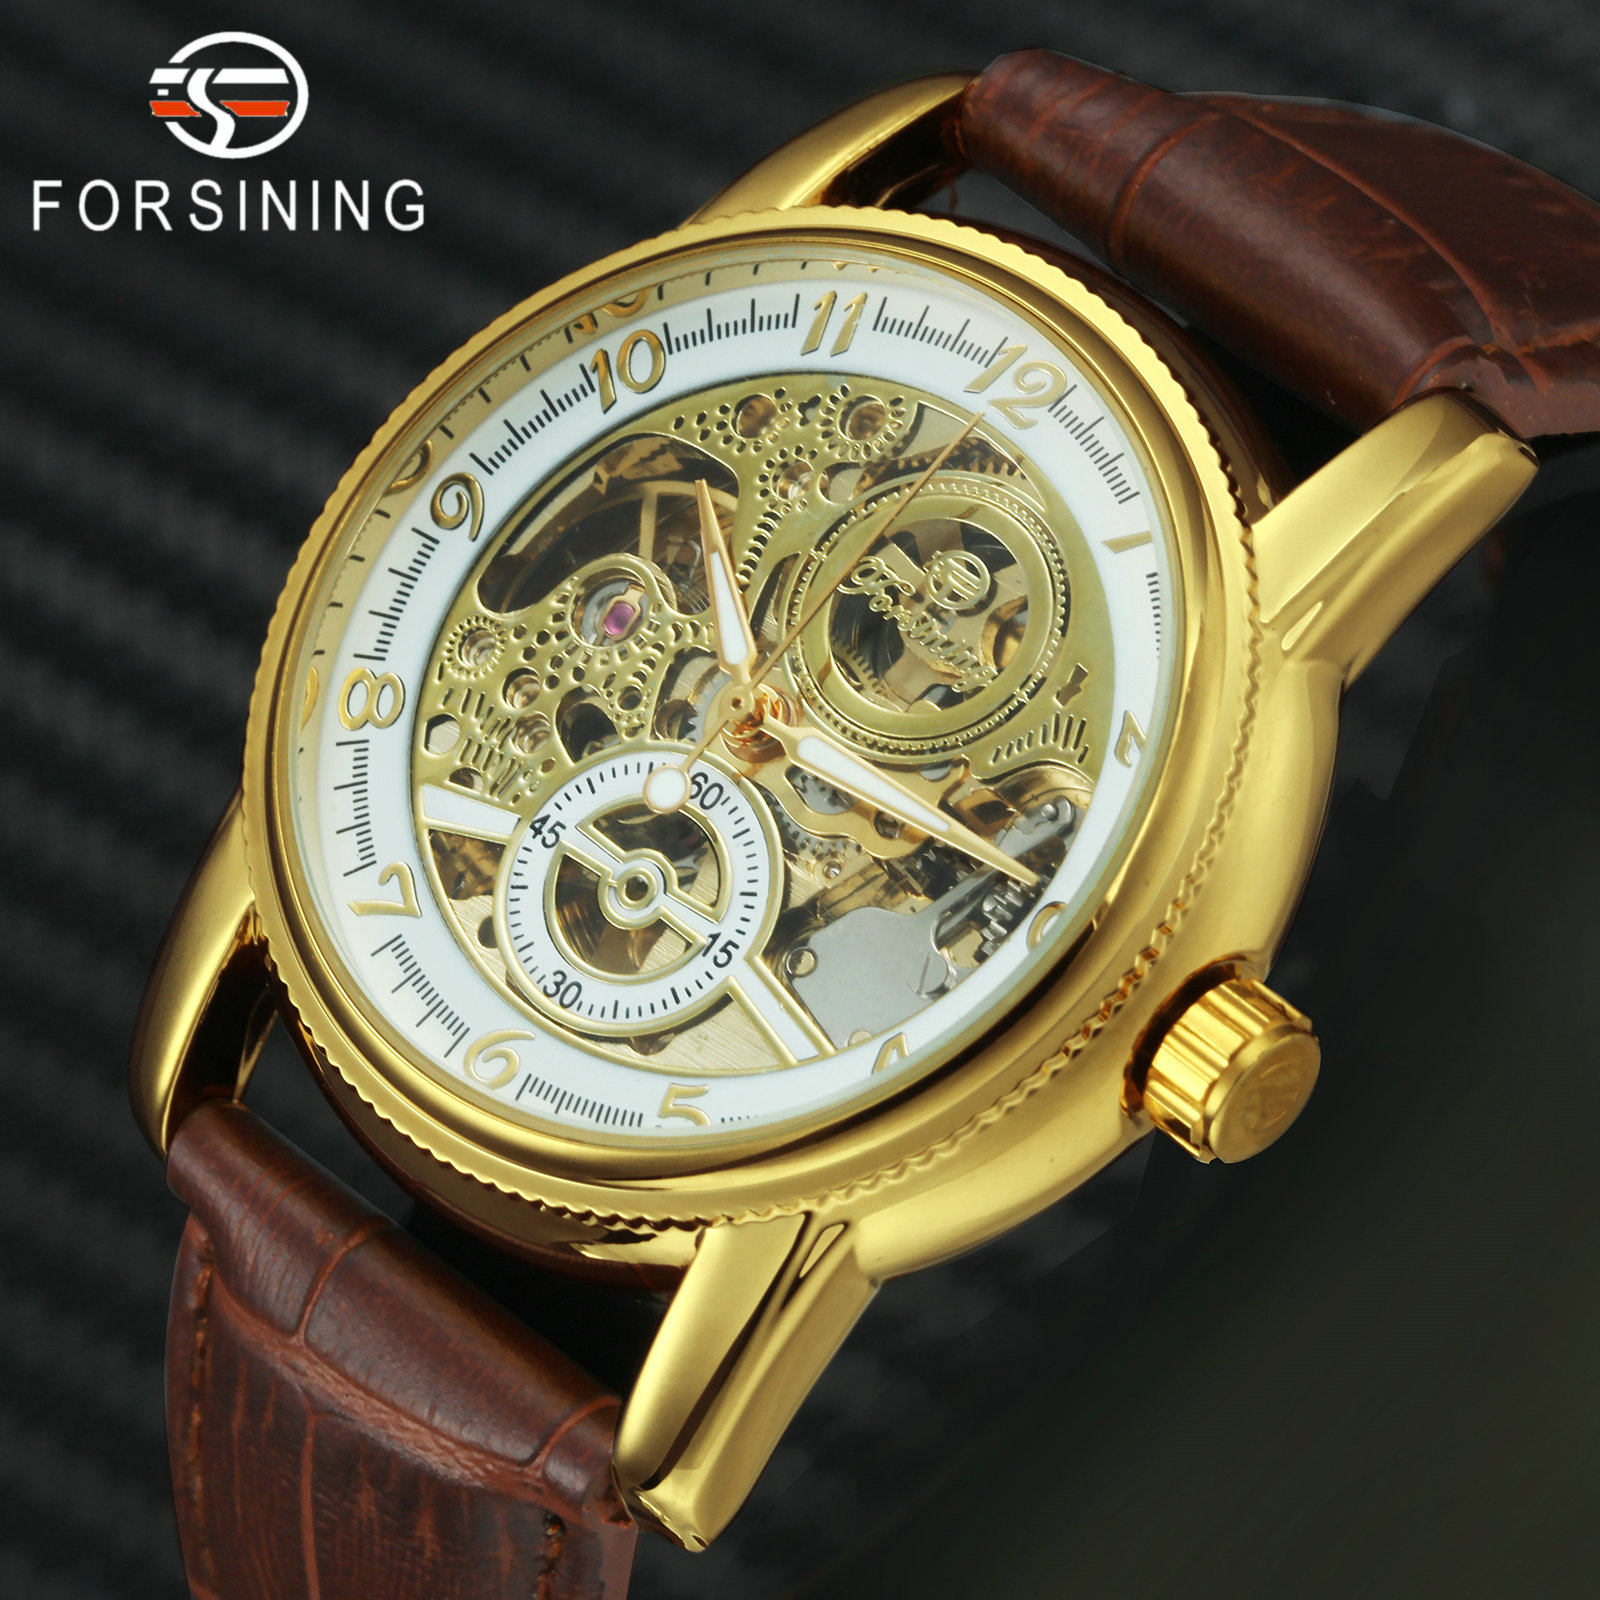 FORSINING Top Brand Luxury Watch Men Retro Dress Auto Mechanical Leather Strap Unique Skeleton Vintage Dress Wristwatches Gift